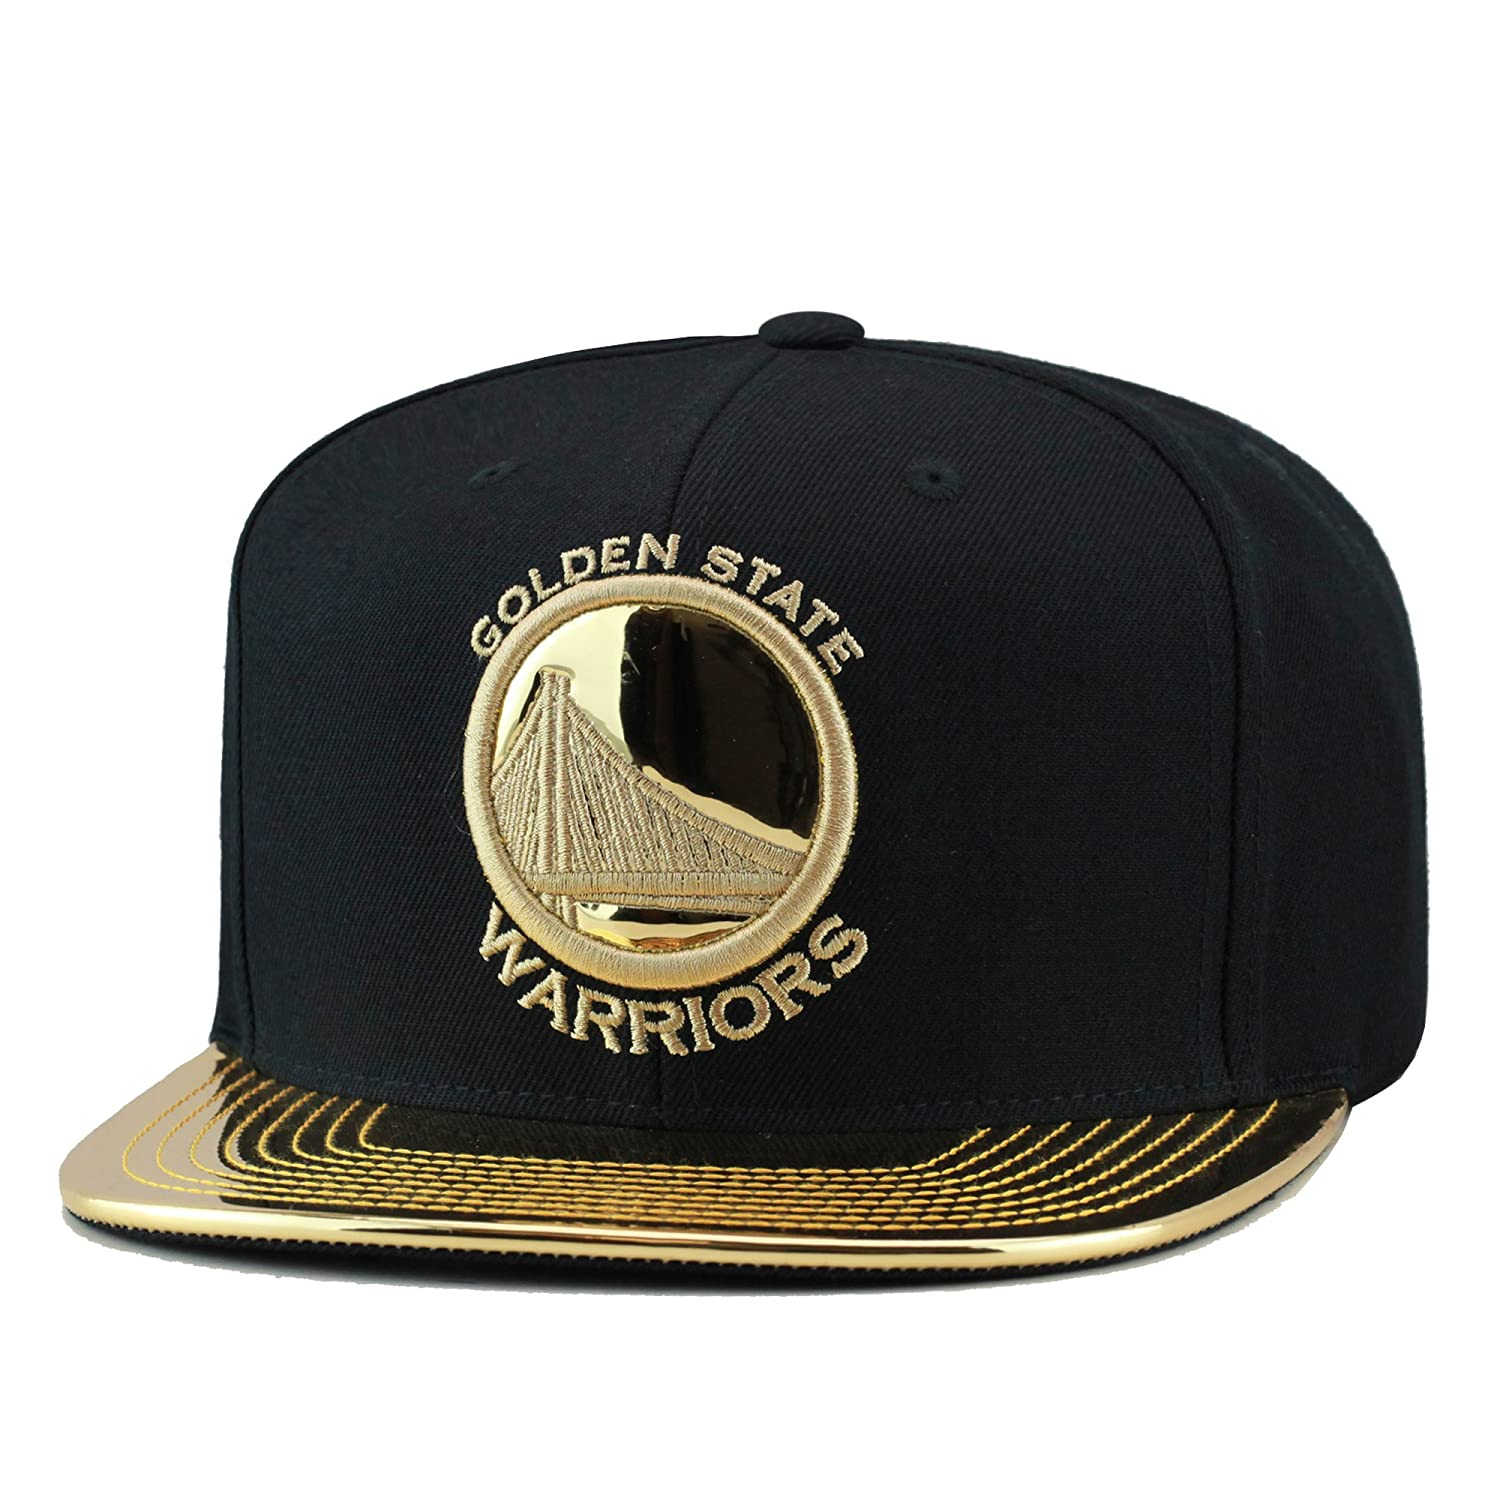 Mitchell   Ness Golden State Warriors Snapback Hat Black Metallic Gold Foil  at Amazon Men s Clothing store  85945dccacac